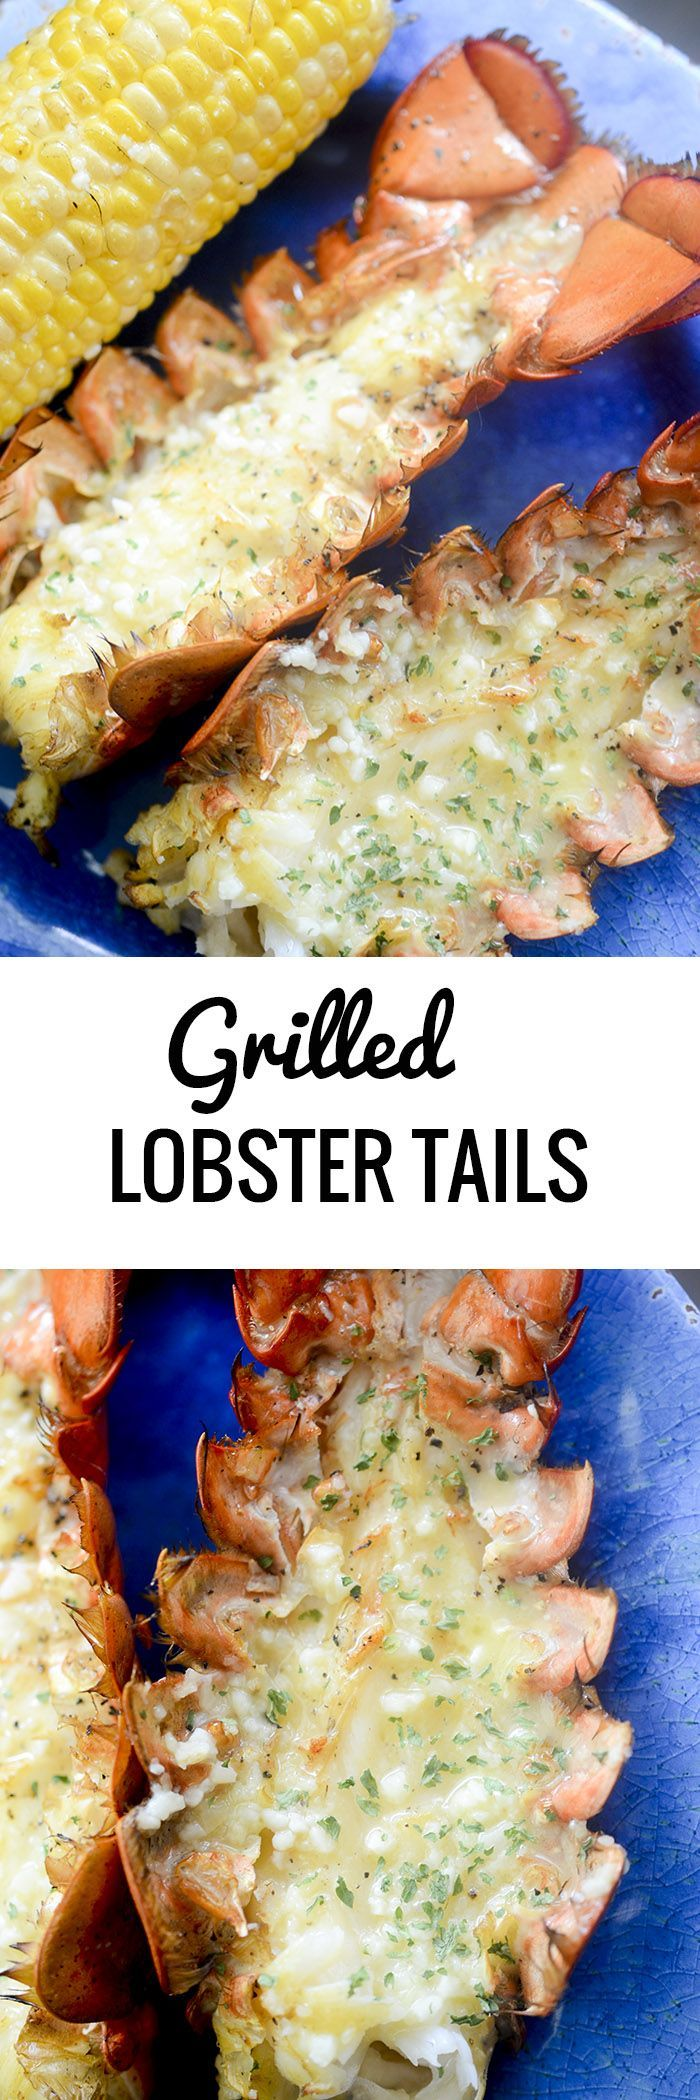 Grilled Lobster Tails - Recipe Diaries